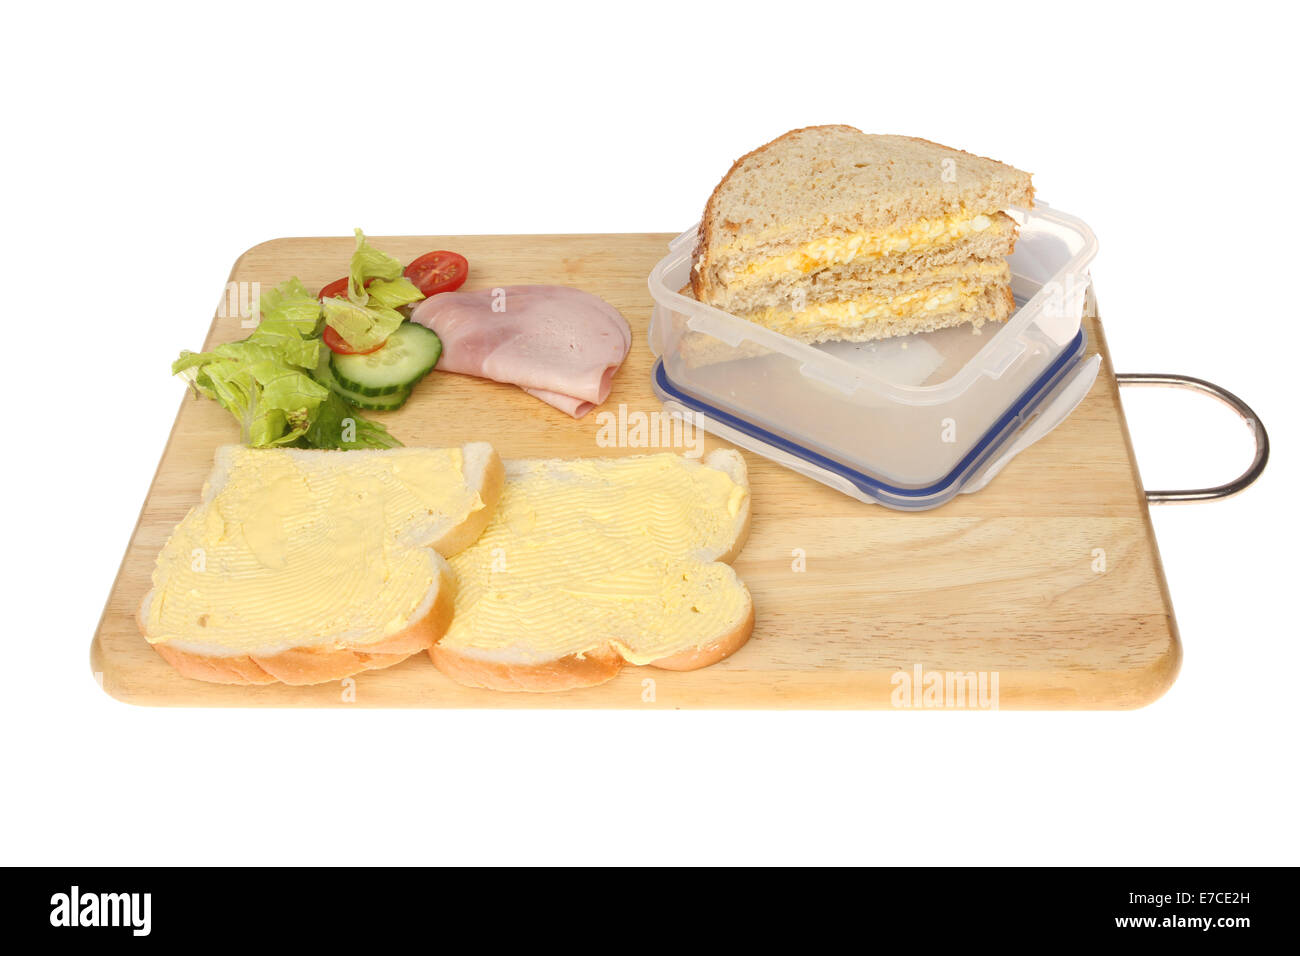 What are the different ingredients in preparing sandwiches